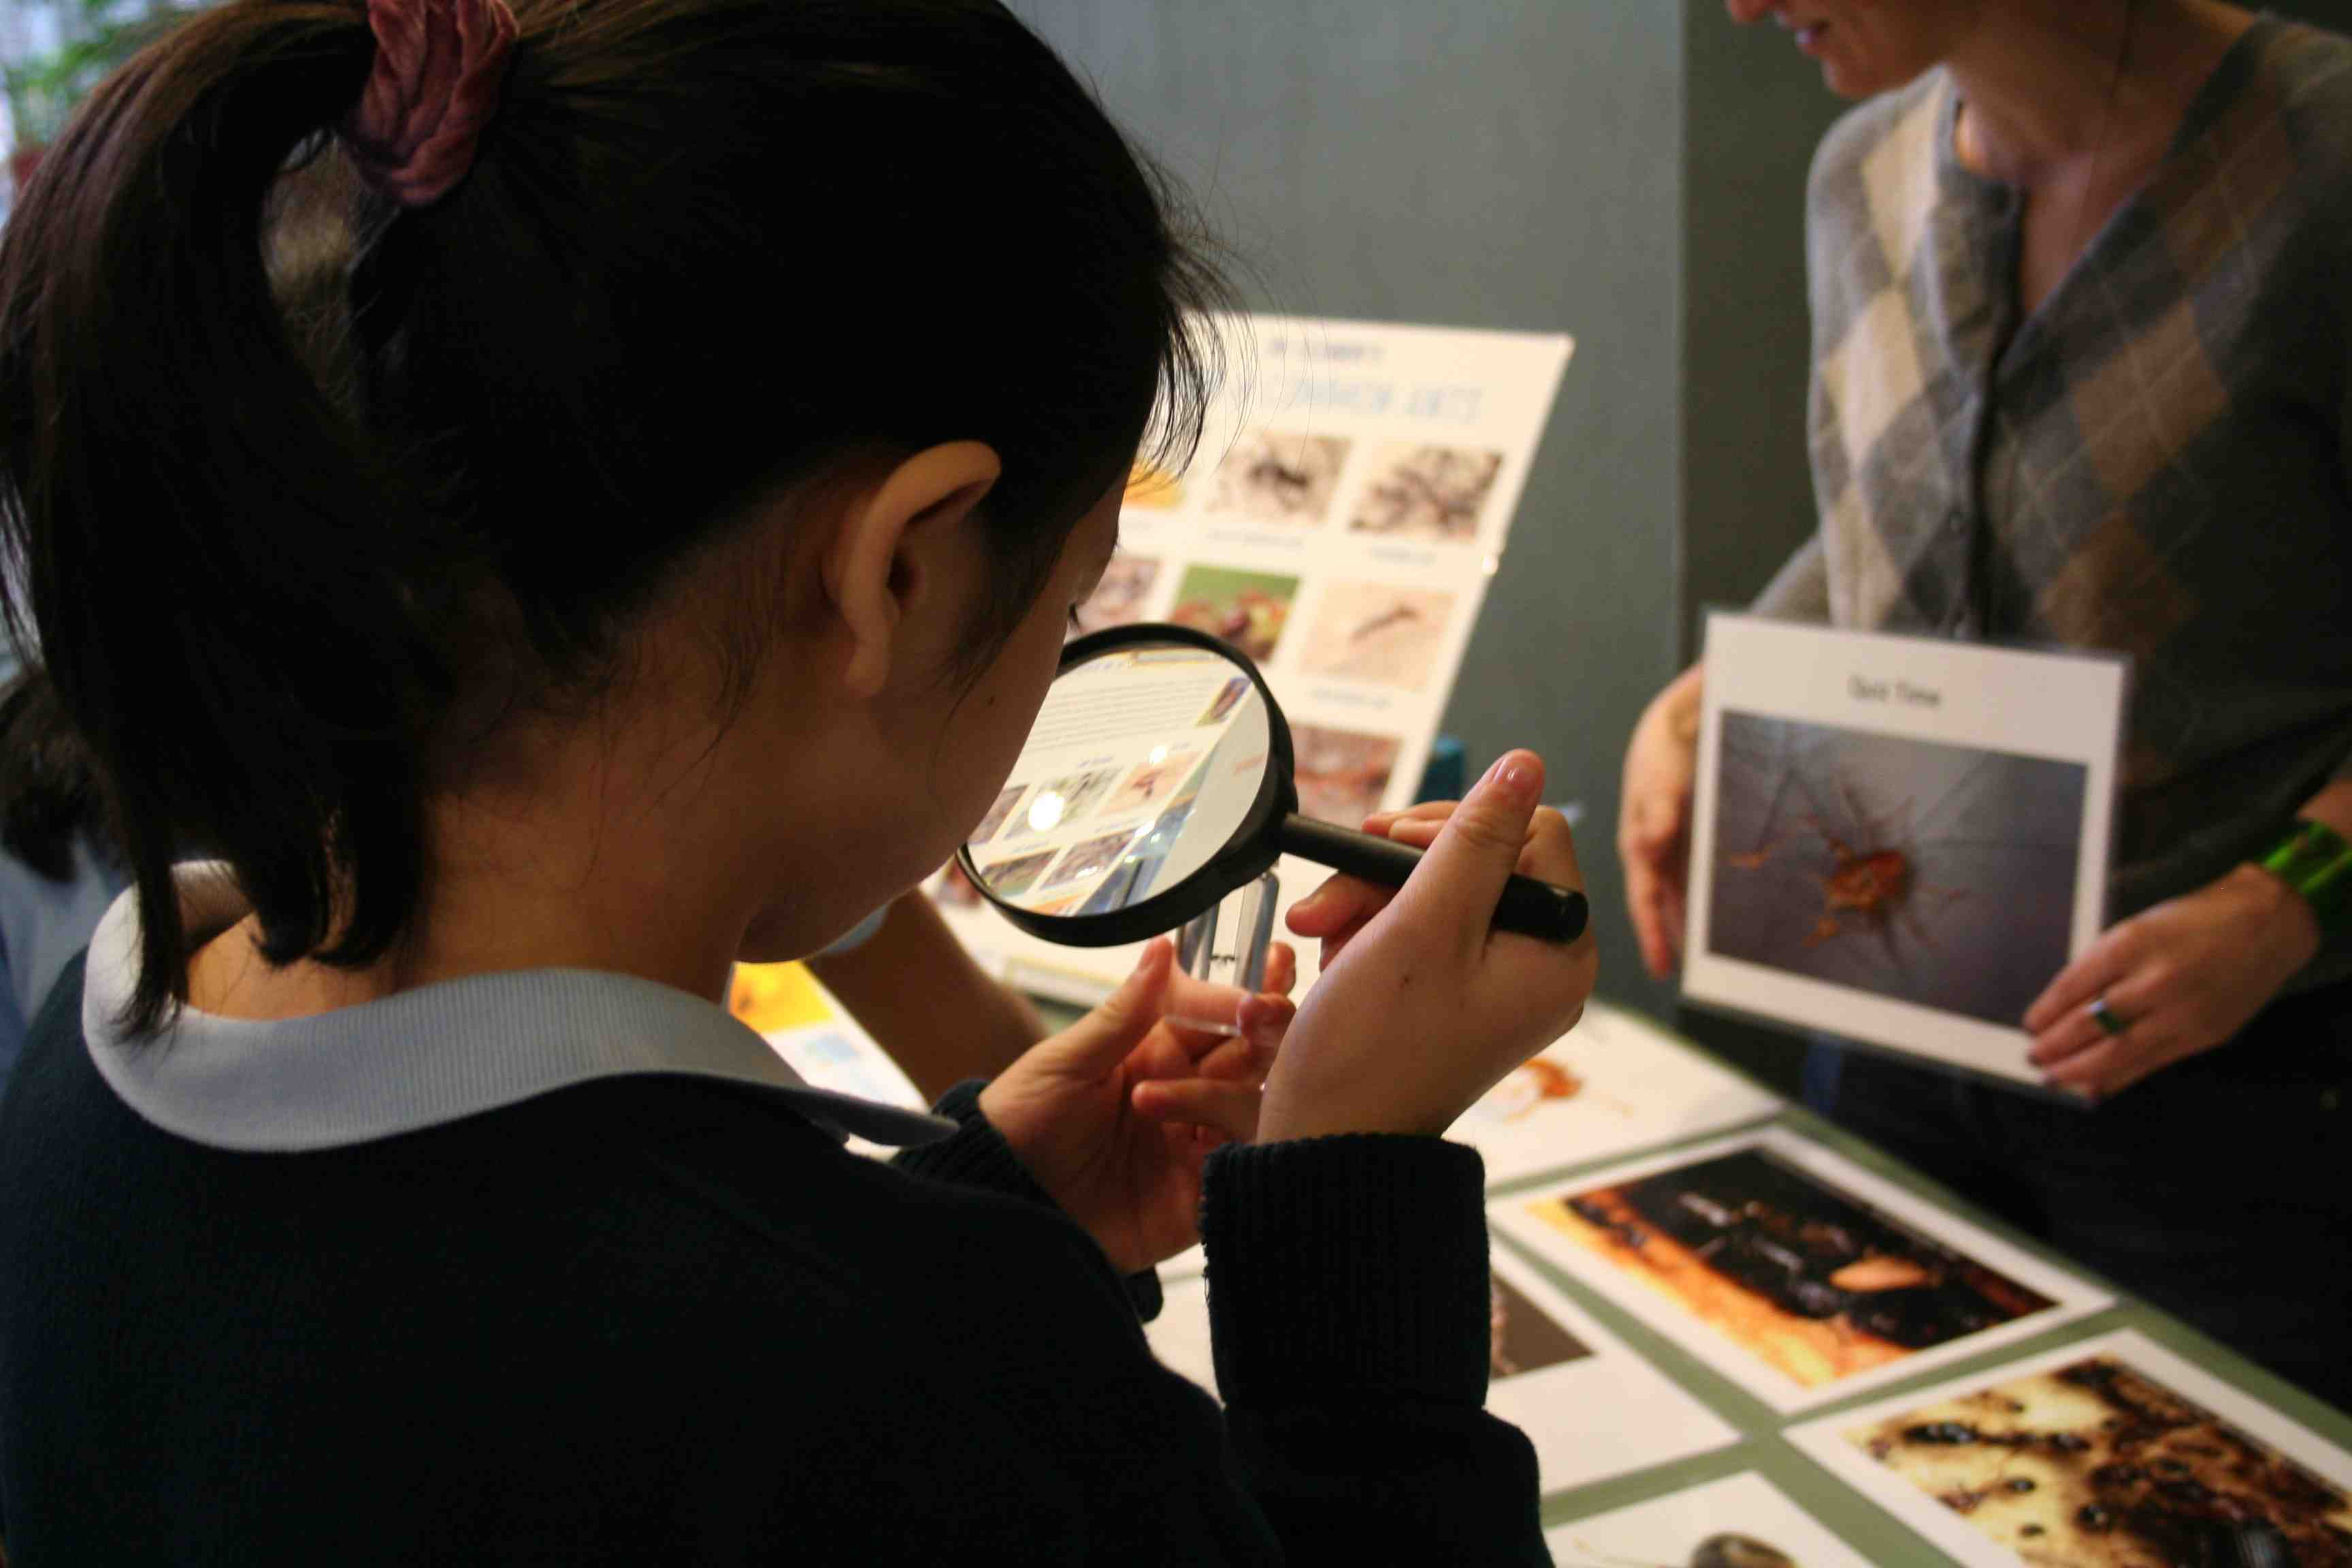 Girl looking at ant with magnifying glass at science fair